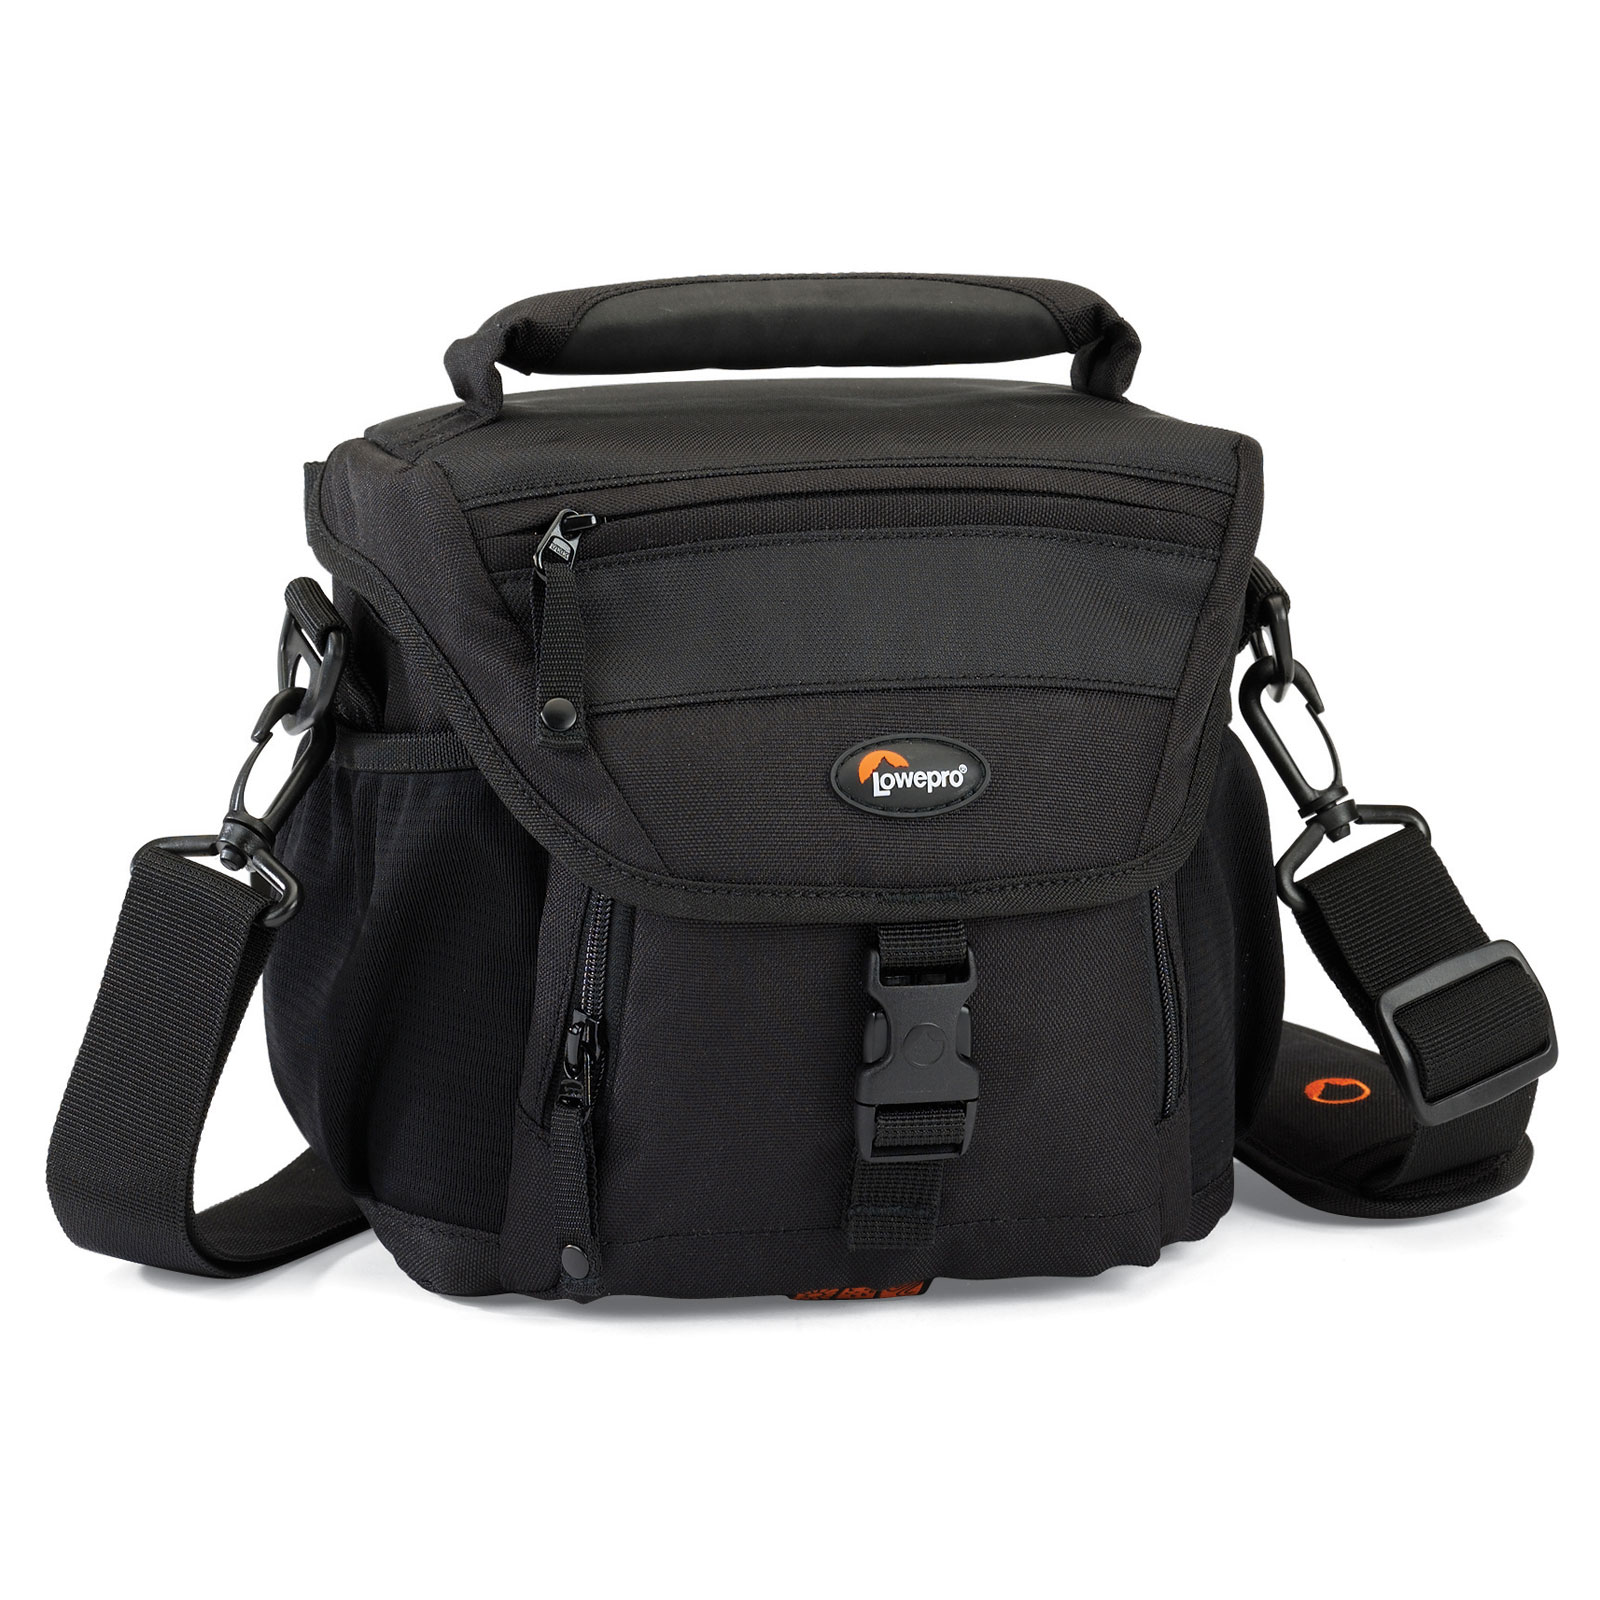 lowepro nova 140 aw sac tui photo lowepro sur. Black Bedroom Furniture Sets. Home Design Ideas